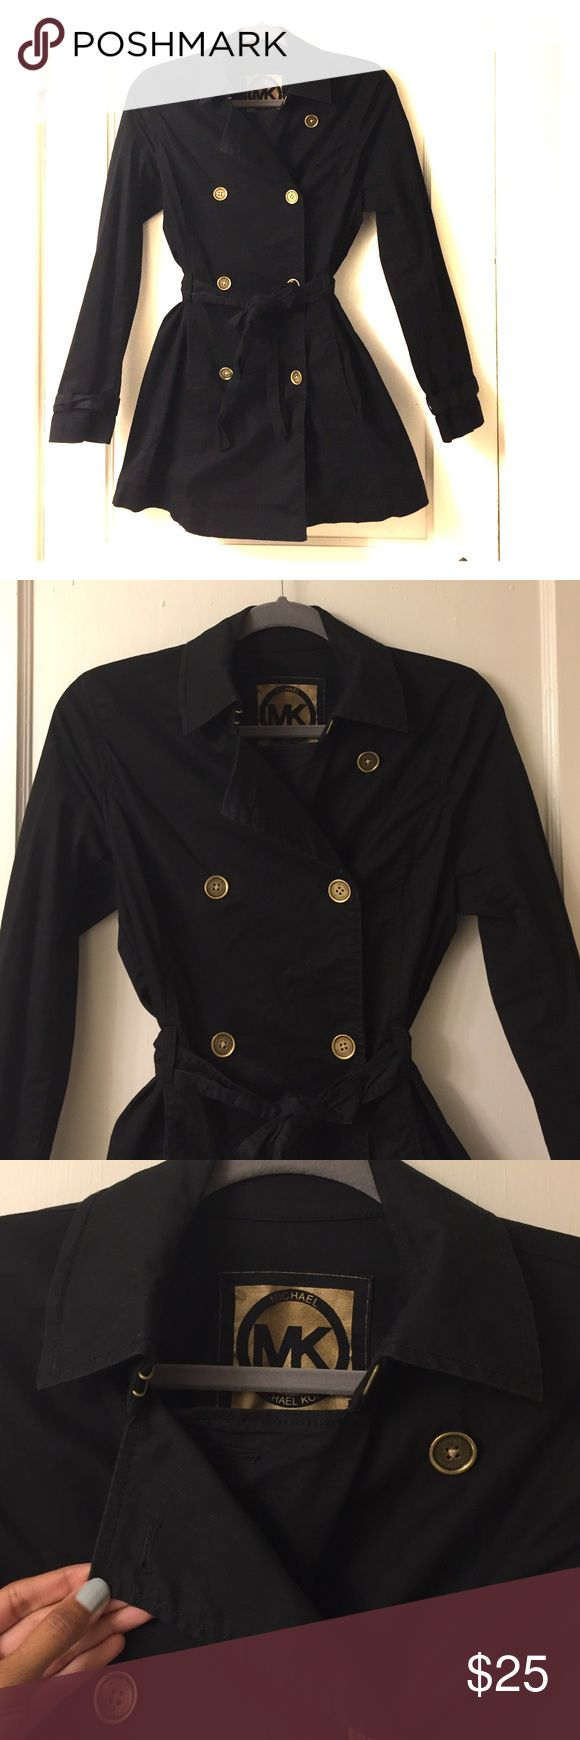 Michael Kors lightweight trench coat~ Size Small Michael Kors lightweight trench coat~ Size Small~ Black. Worn once. Perfect condition, just needs ironing. Light weight cotton trench. Perfect for fall or spring. Bronze buttons with belt to cinch in the middle. Michael Kors Jackets & Coats Trench Coats